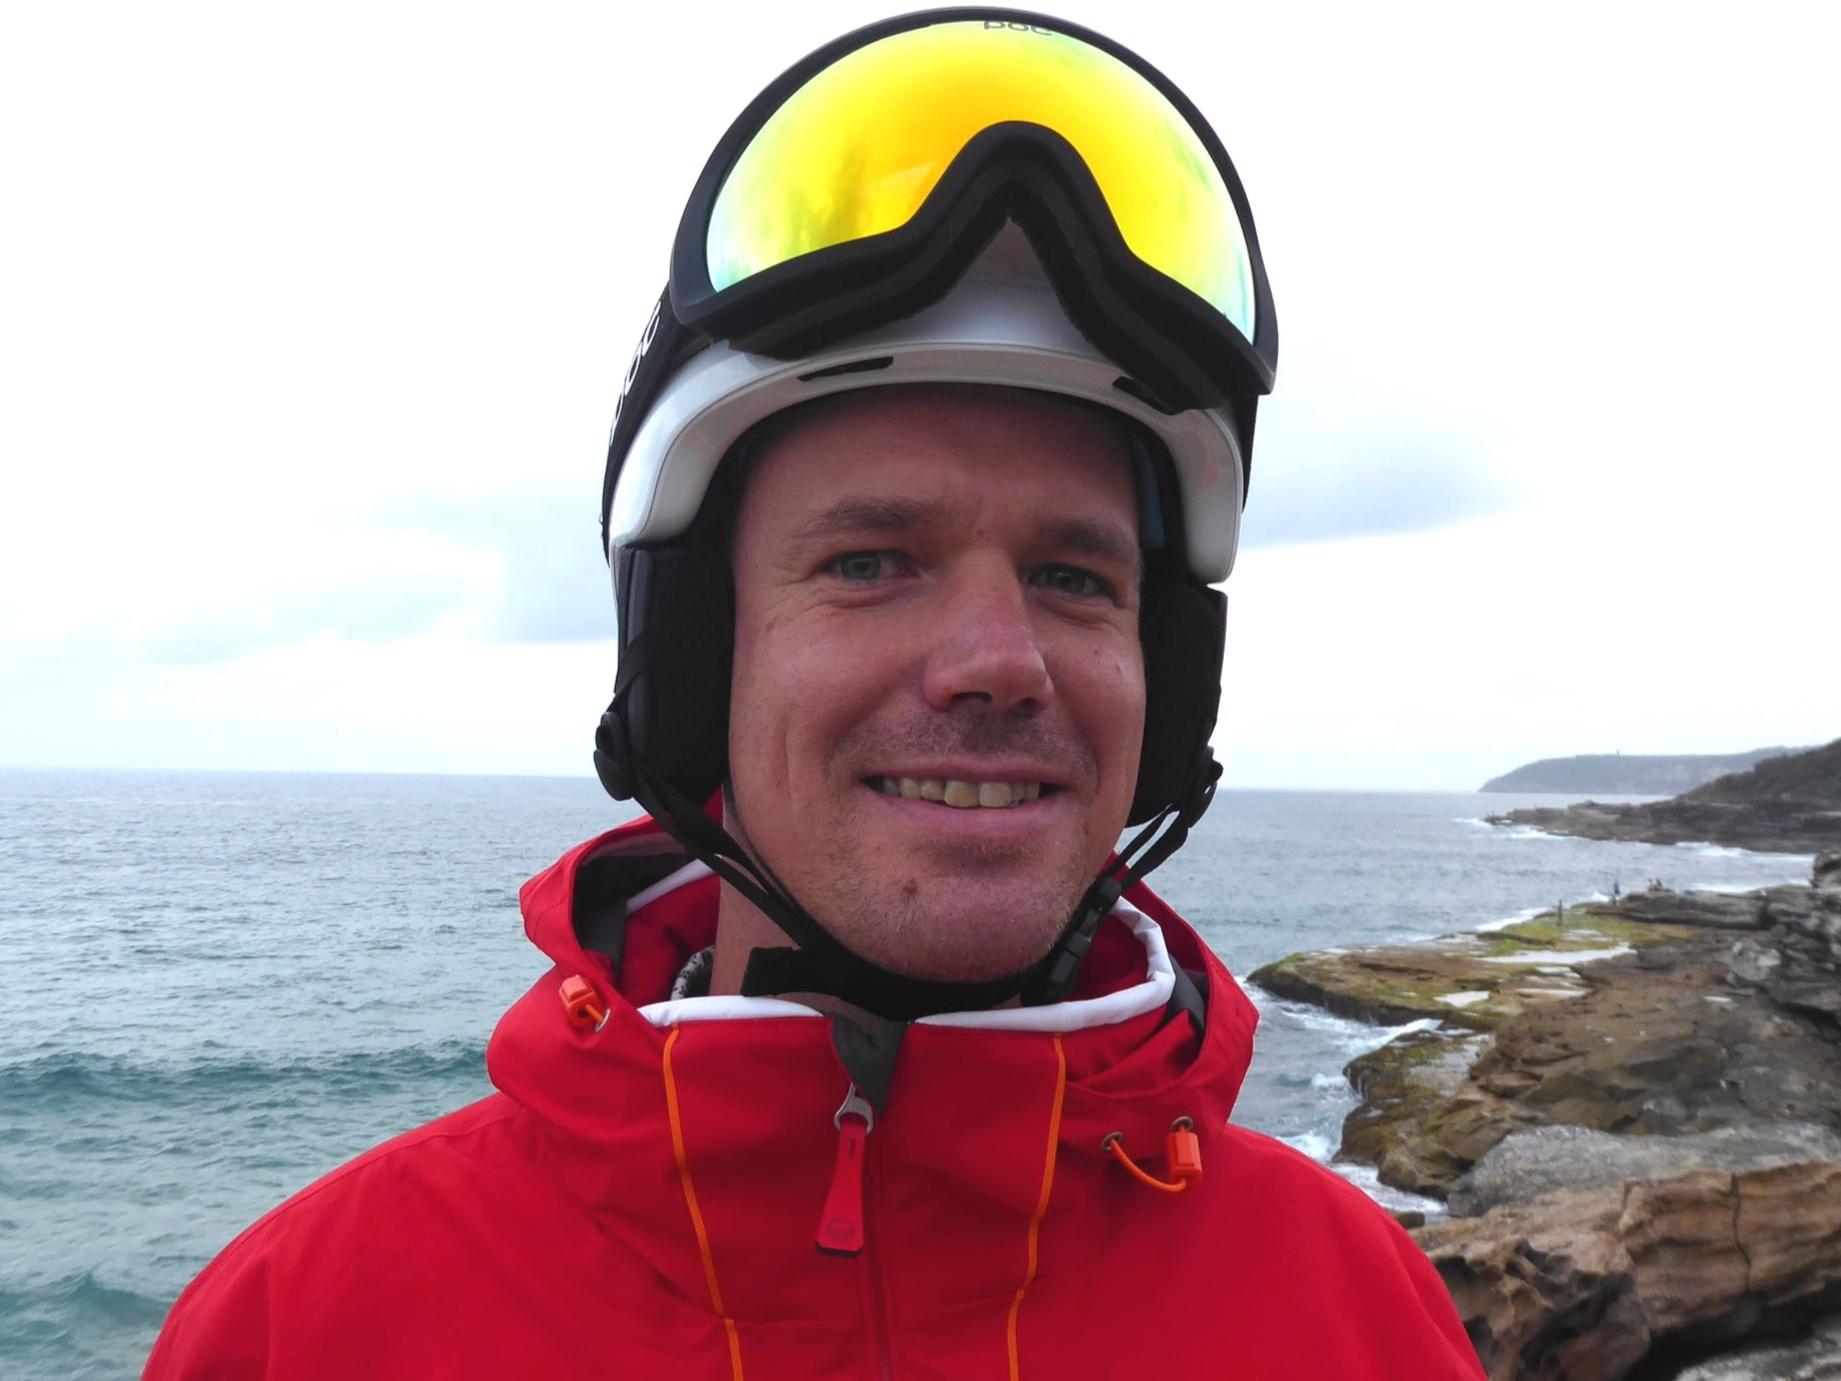 HANS RUMPOLD - Fully certified Austrian Skiing instructor;3 seasons Sofa Ski Camps NZ coach; CATSKI Guide Japan; 5 years head of ski school Hochrindl (Austria); 4 years ski shop manager Sydney; Over 20 years teaching experience; Founding member Snow51 ChinaFounder Skisportadventure